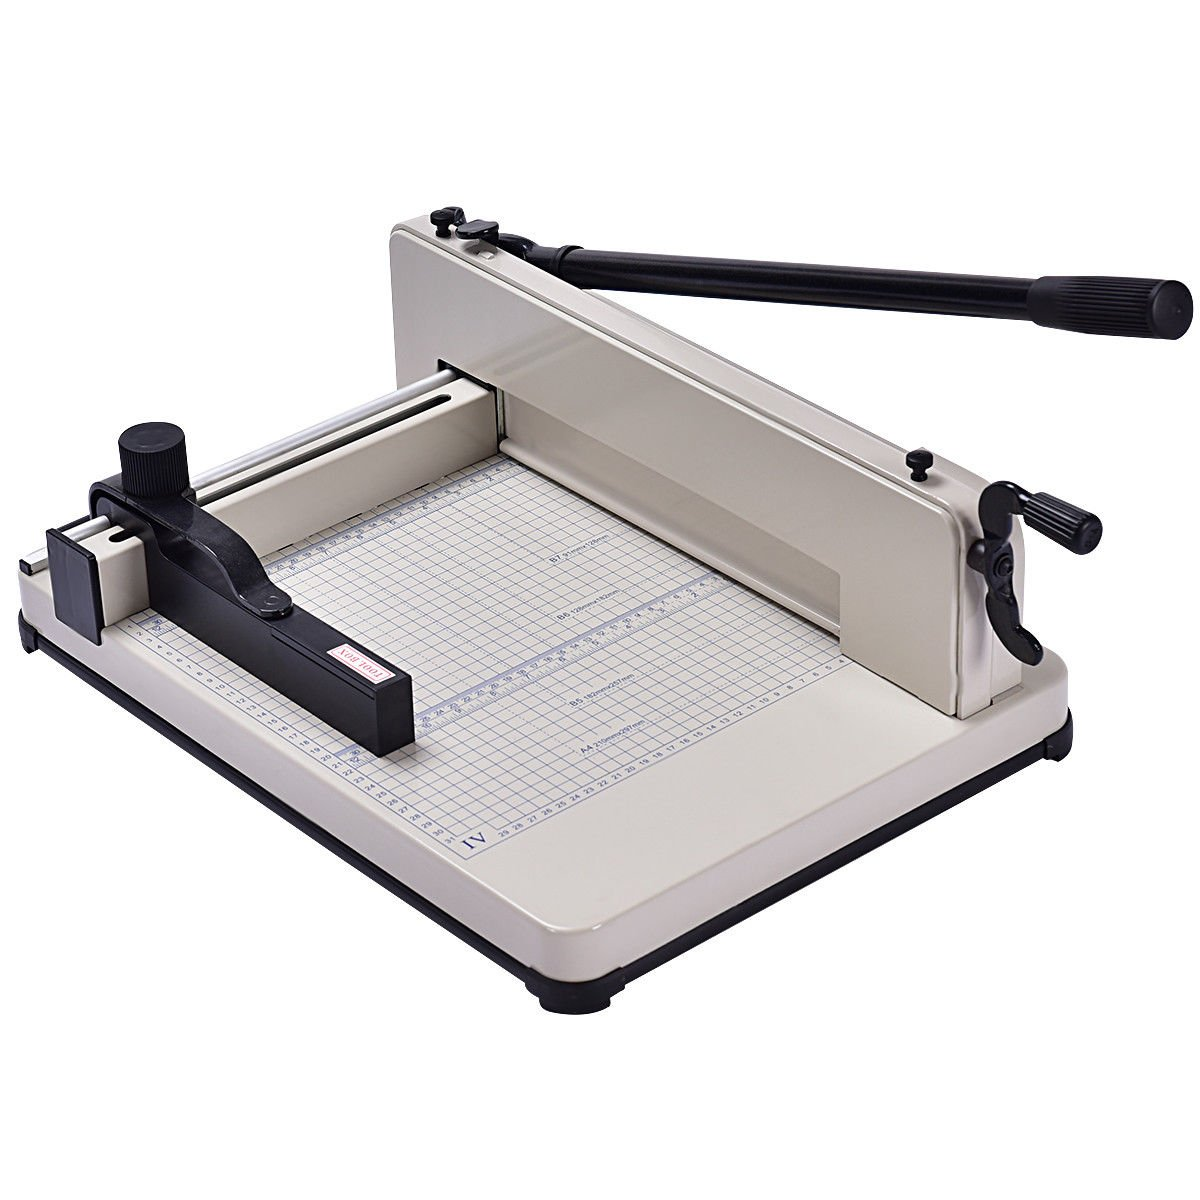 Giantex 12'' Guillotine Paper Cutter, Heavy Duty A4 Trimmer Machine with Commercial Metal Base and 400 Sheet Large Capacity for Home and Office, Paper Trimmer by Giantex